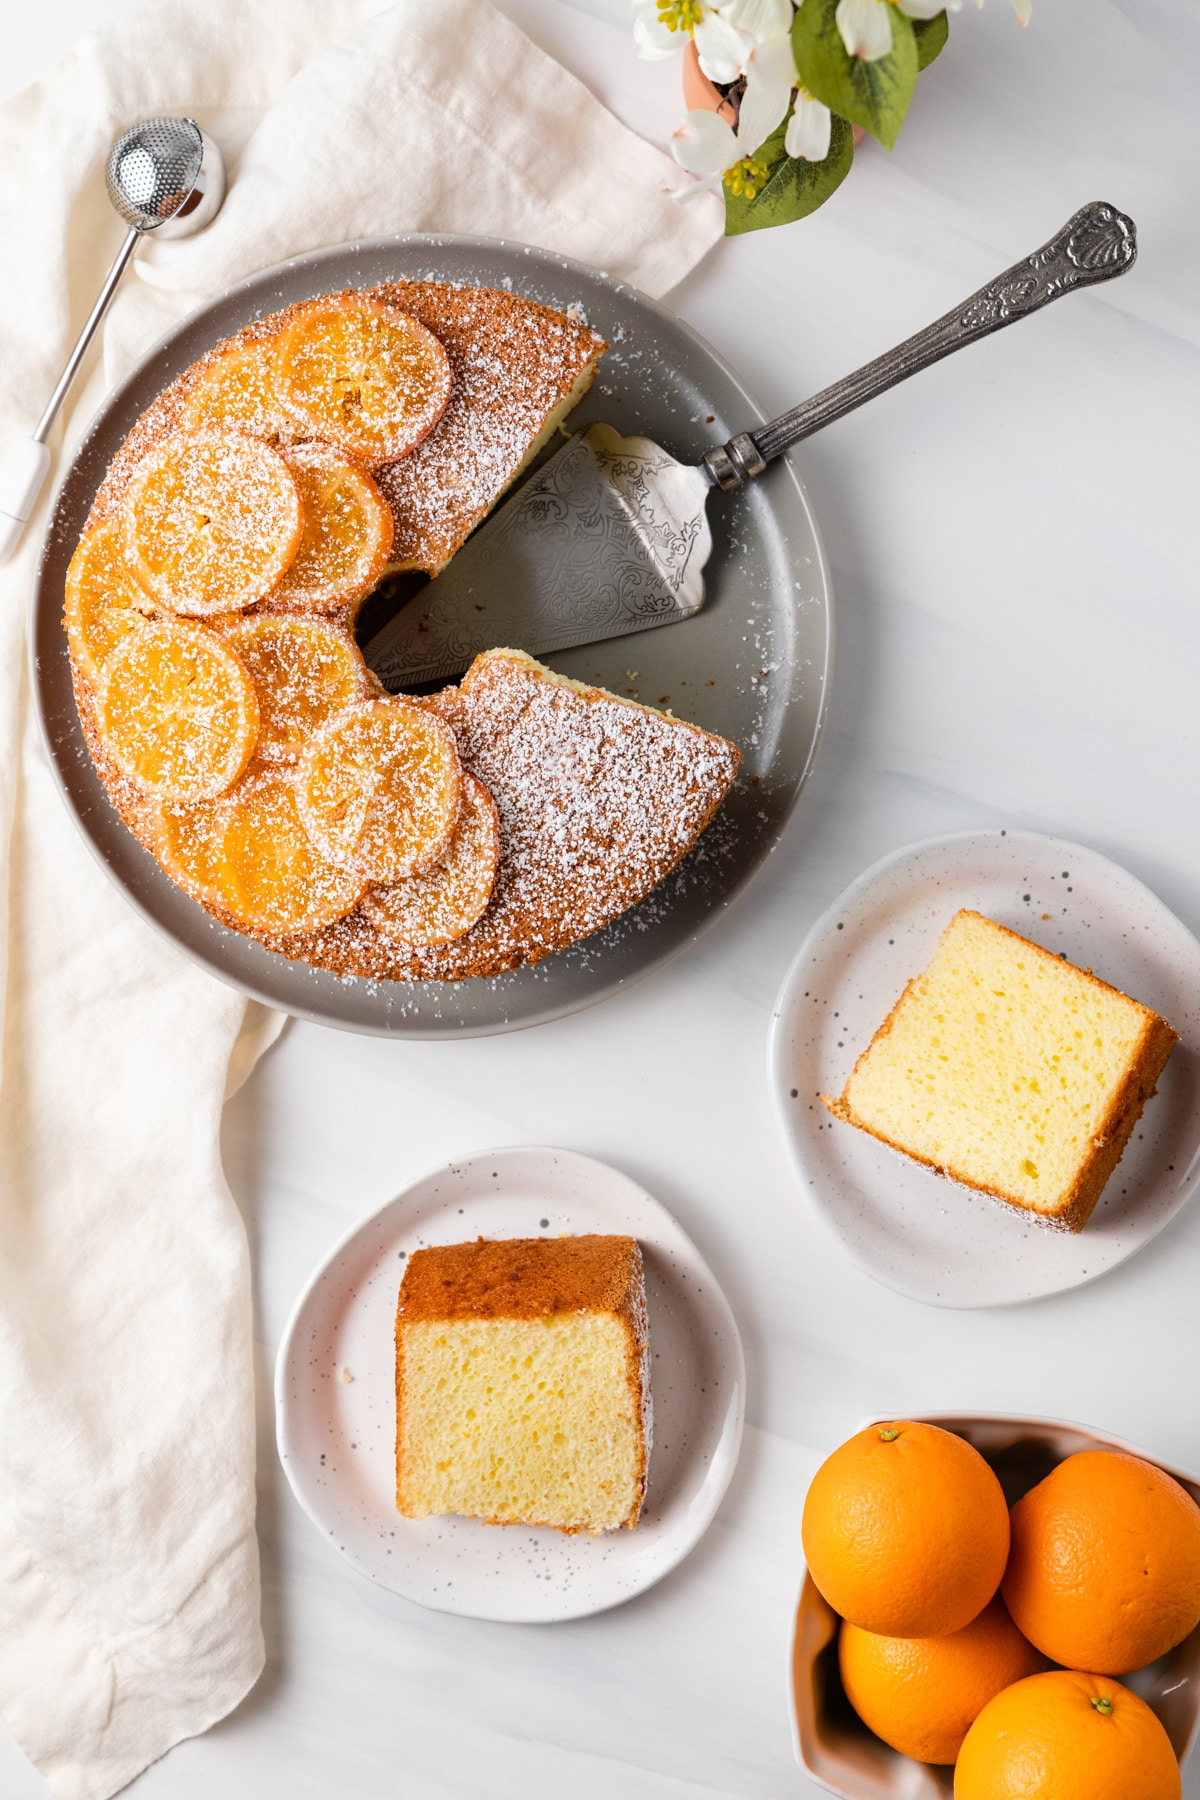 overhead of orange chiffon cake next to two slices on plates